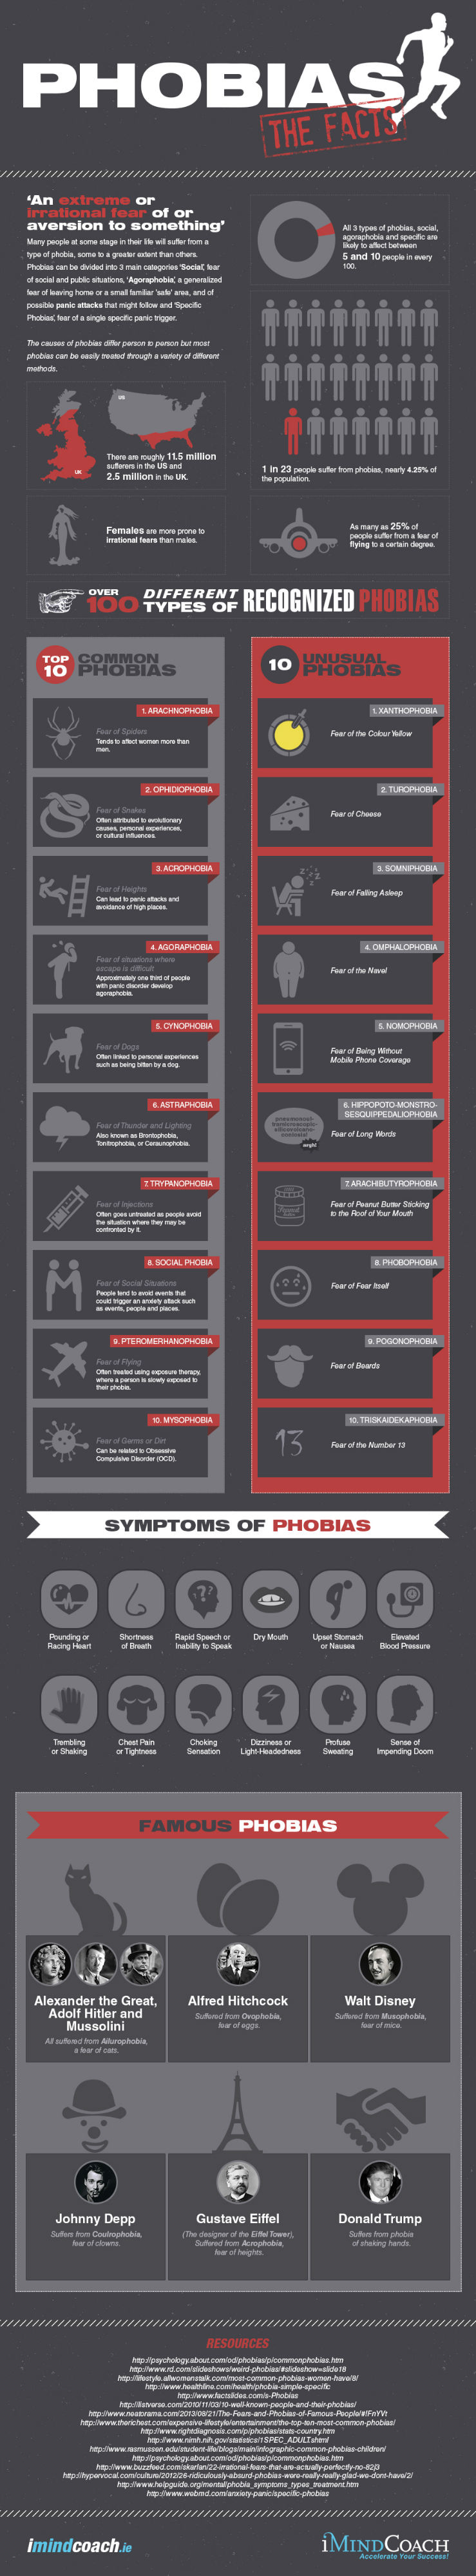 Phobias – The Facts [Infographic]